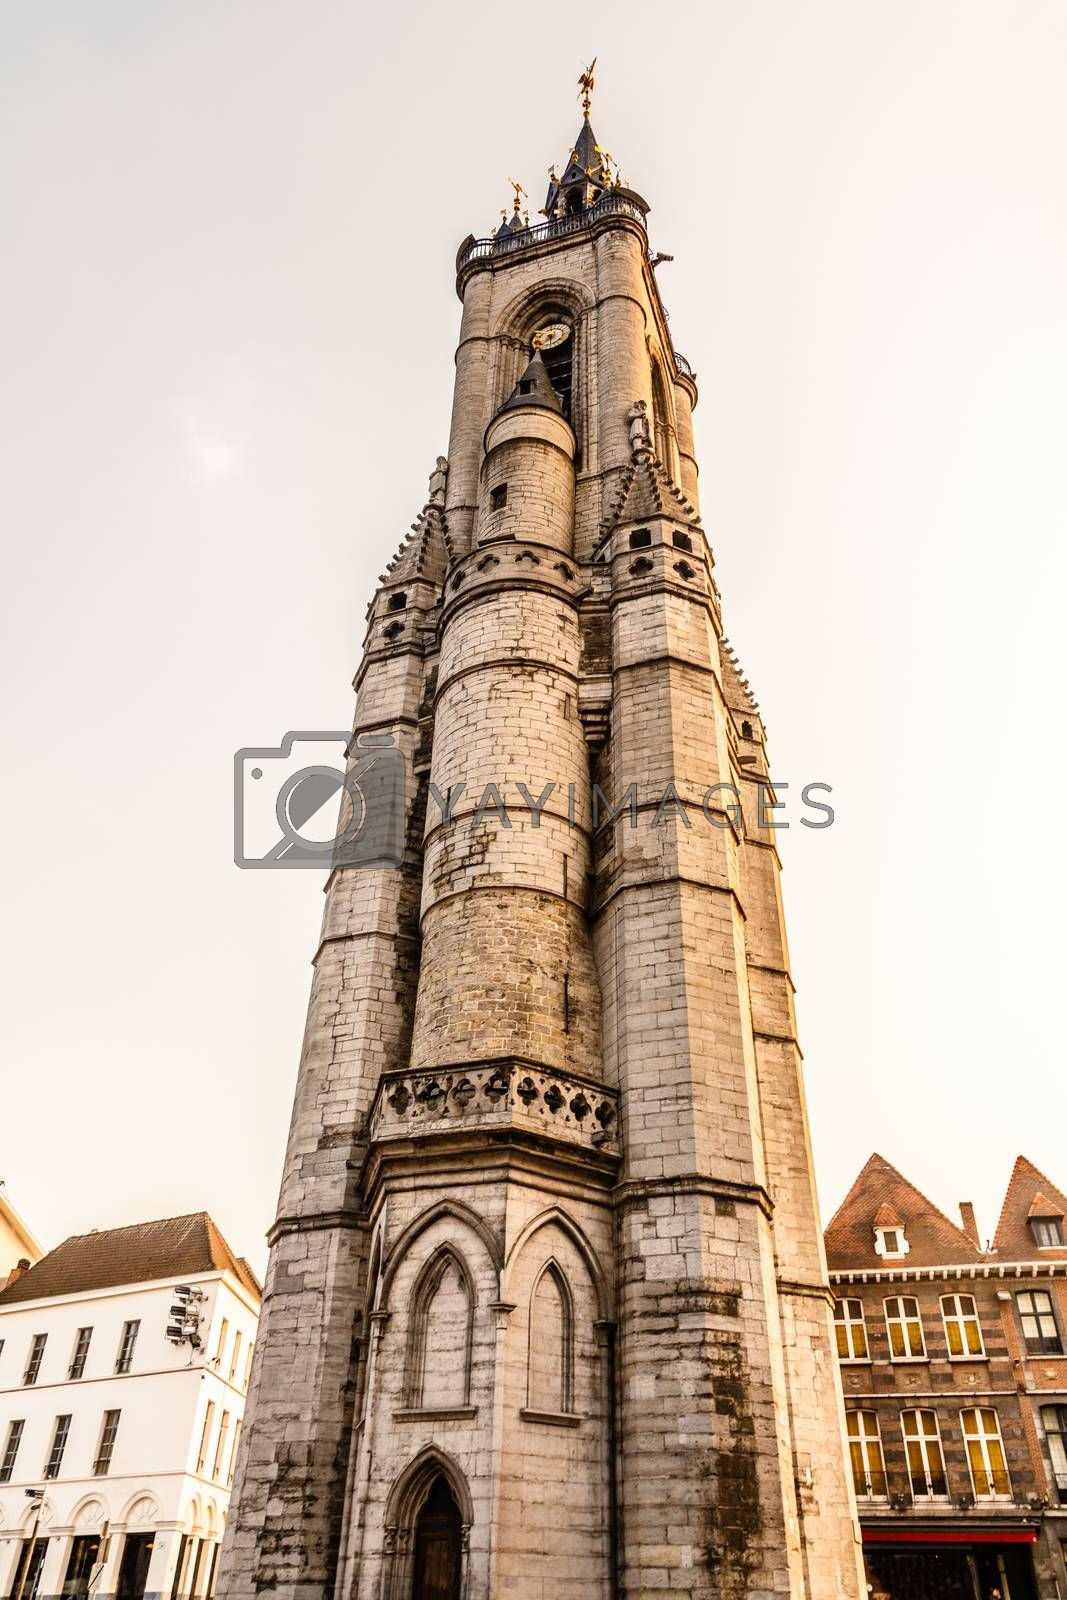 Tall medieval bell tower rising over the street with old european houses, Tournai, Walloon municipality, Belgium